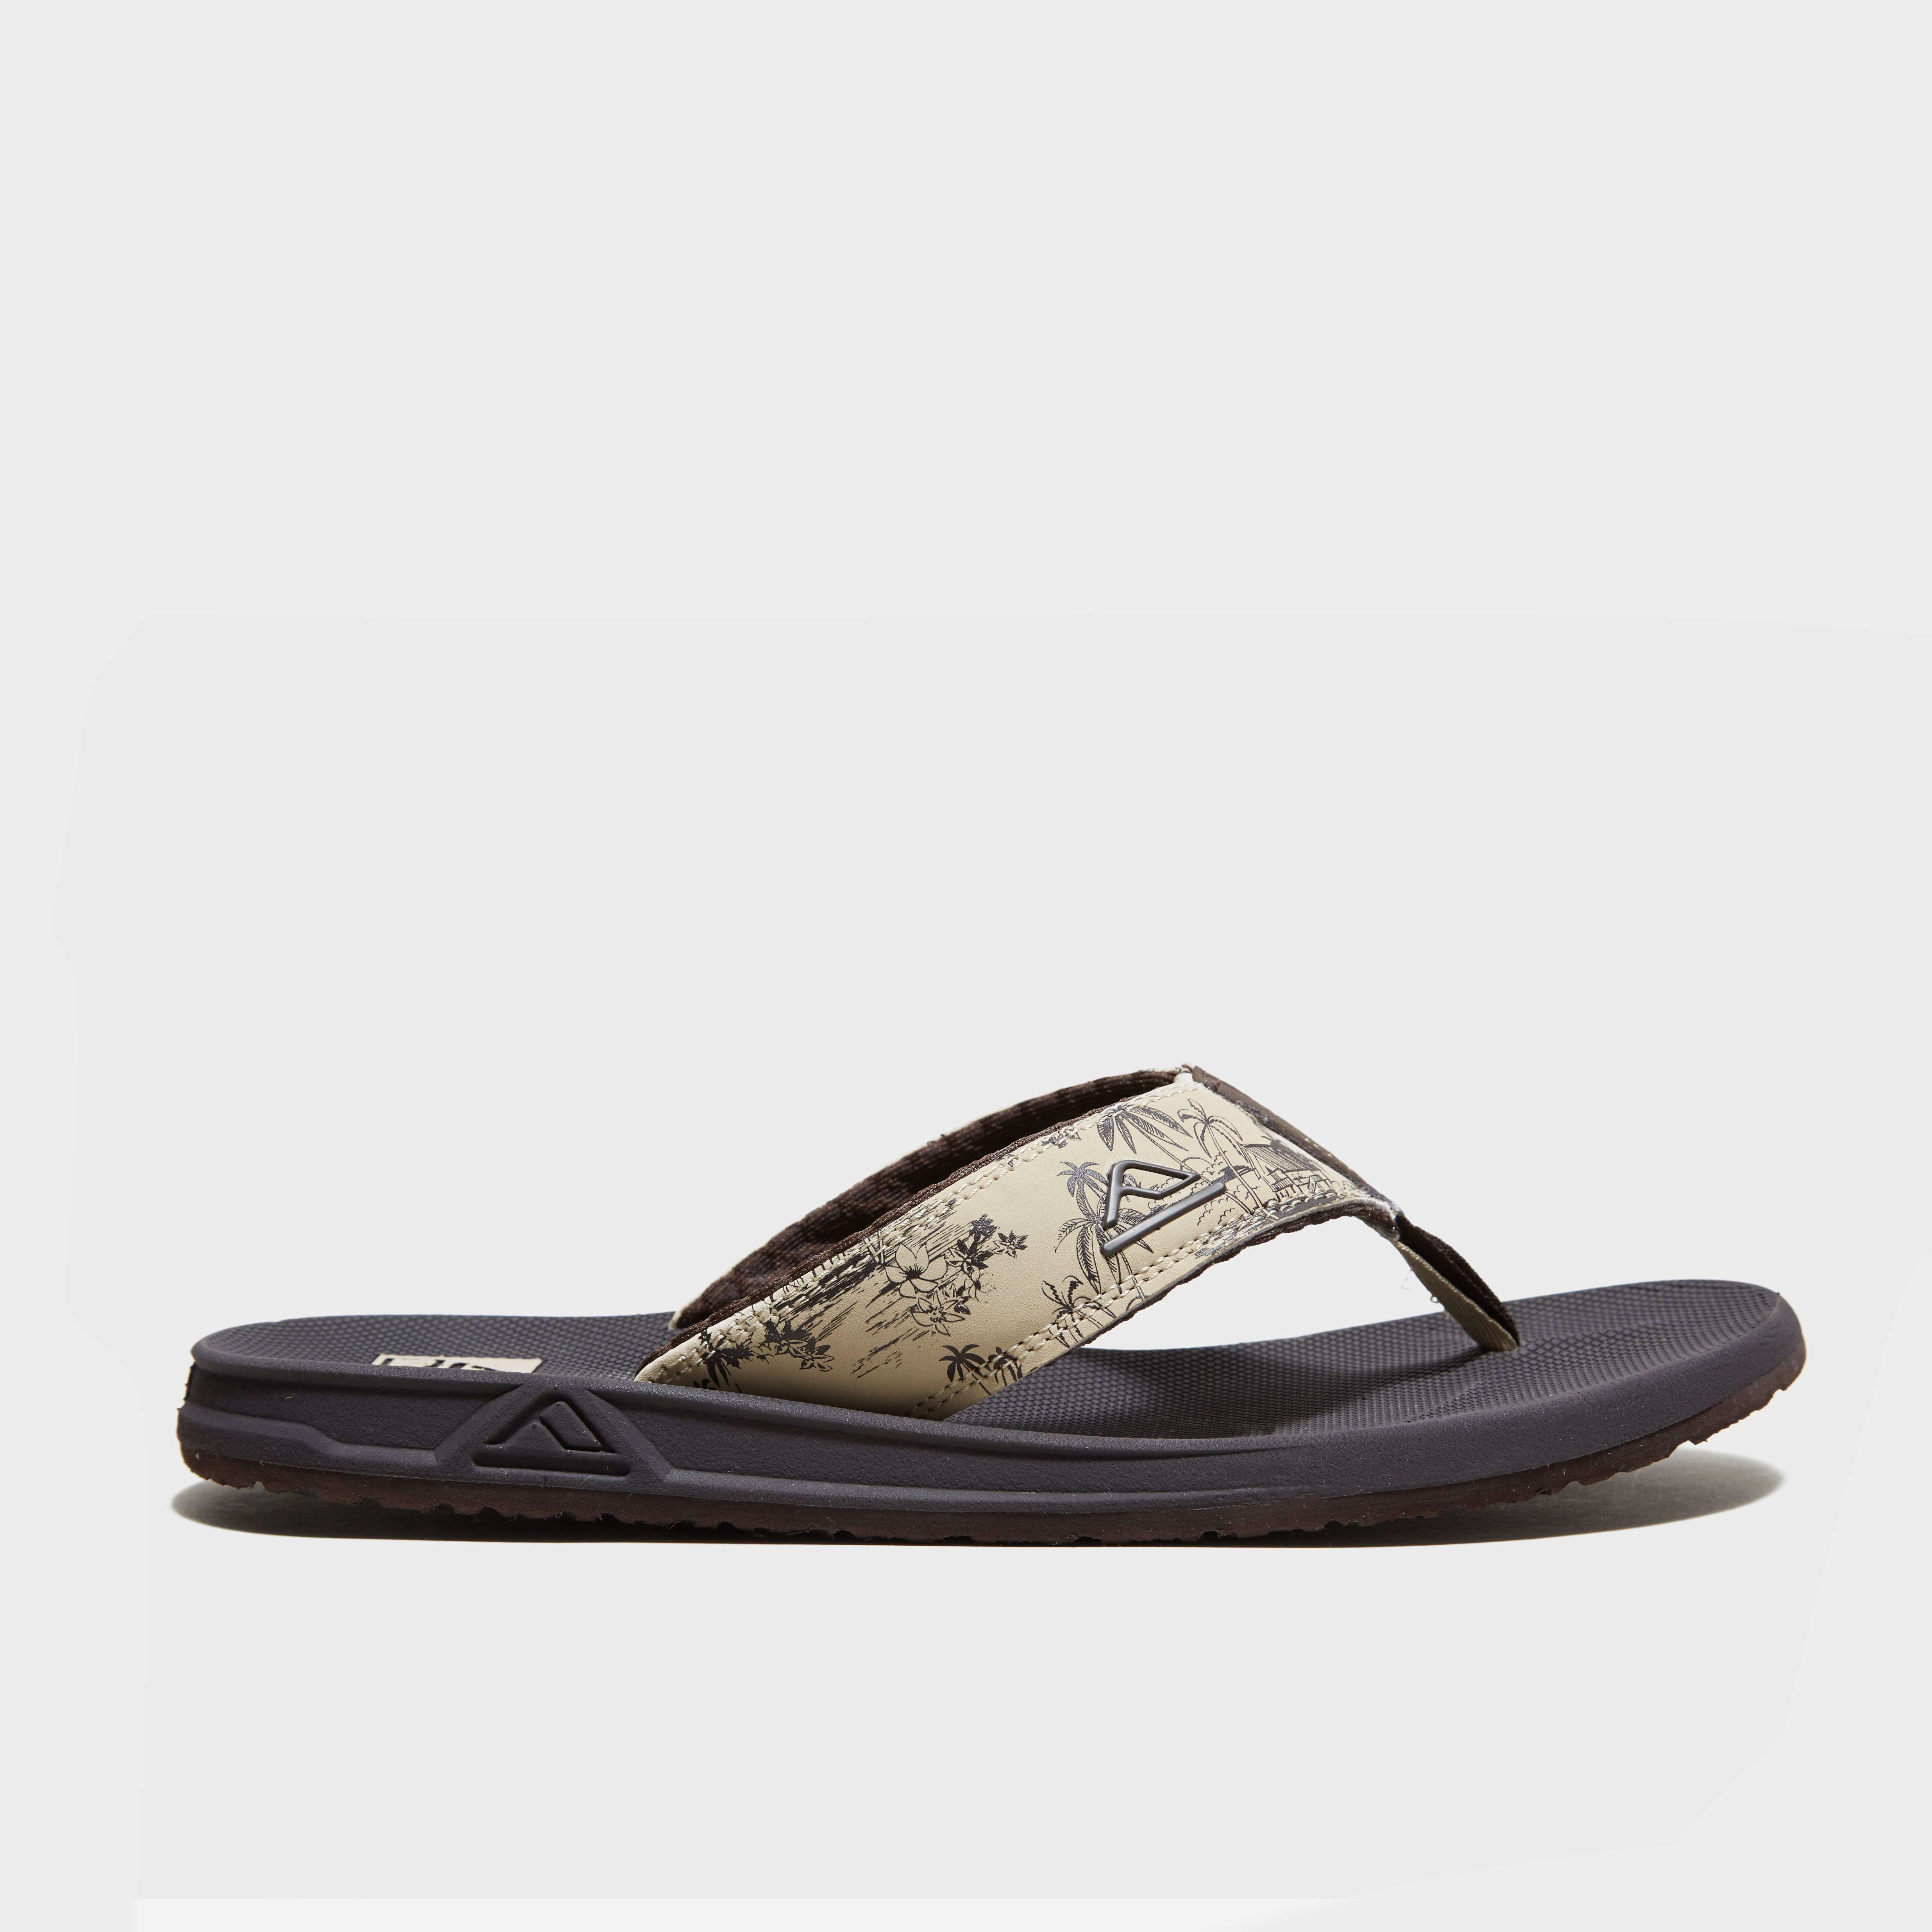 REEF Men's Phantom Flip Flops